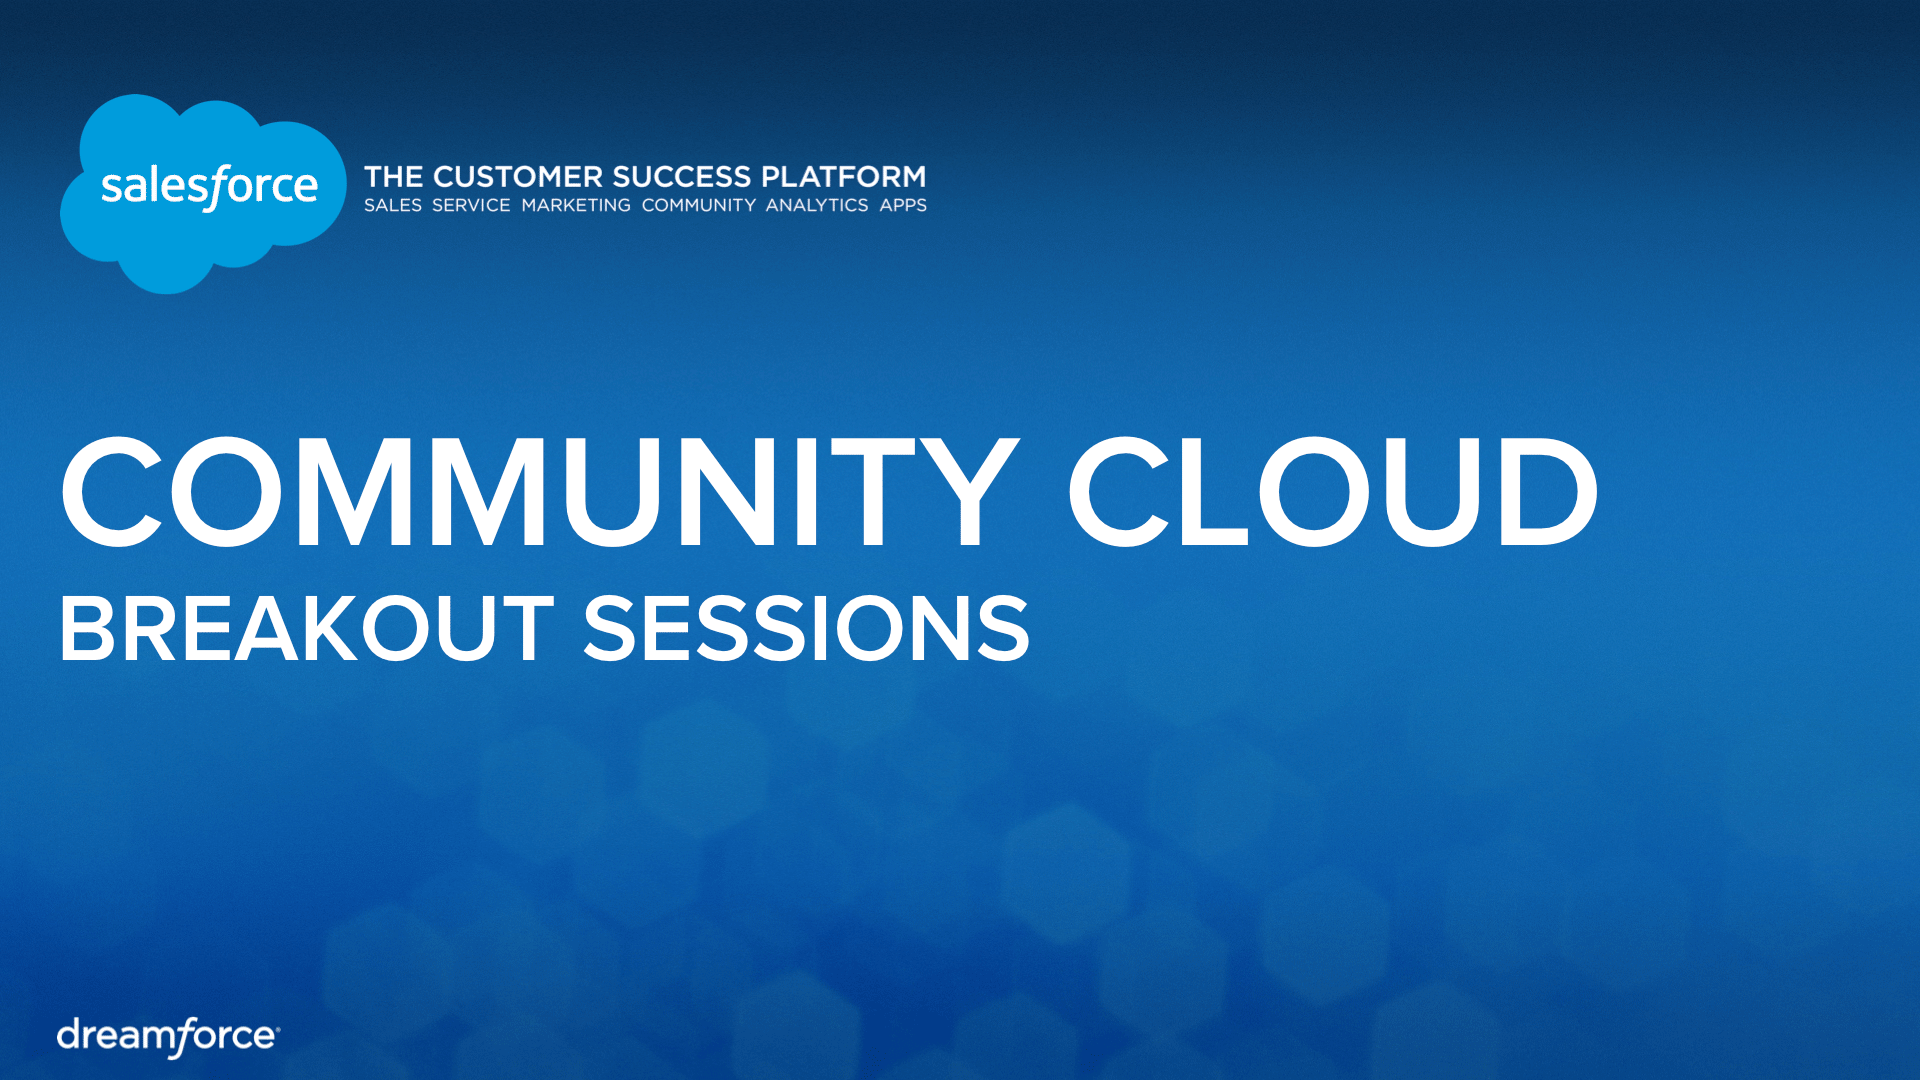 best practices how salesforcecom uses the community cloud